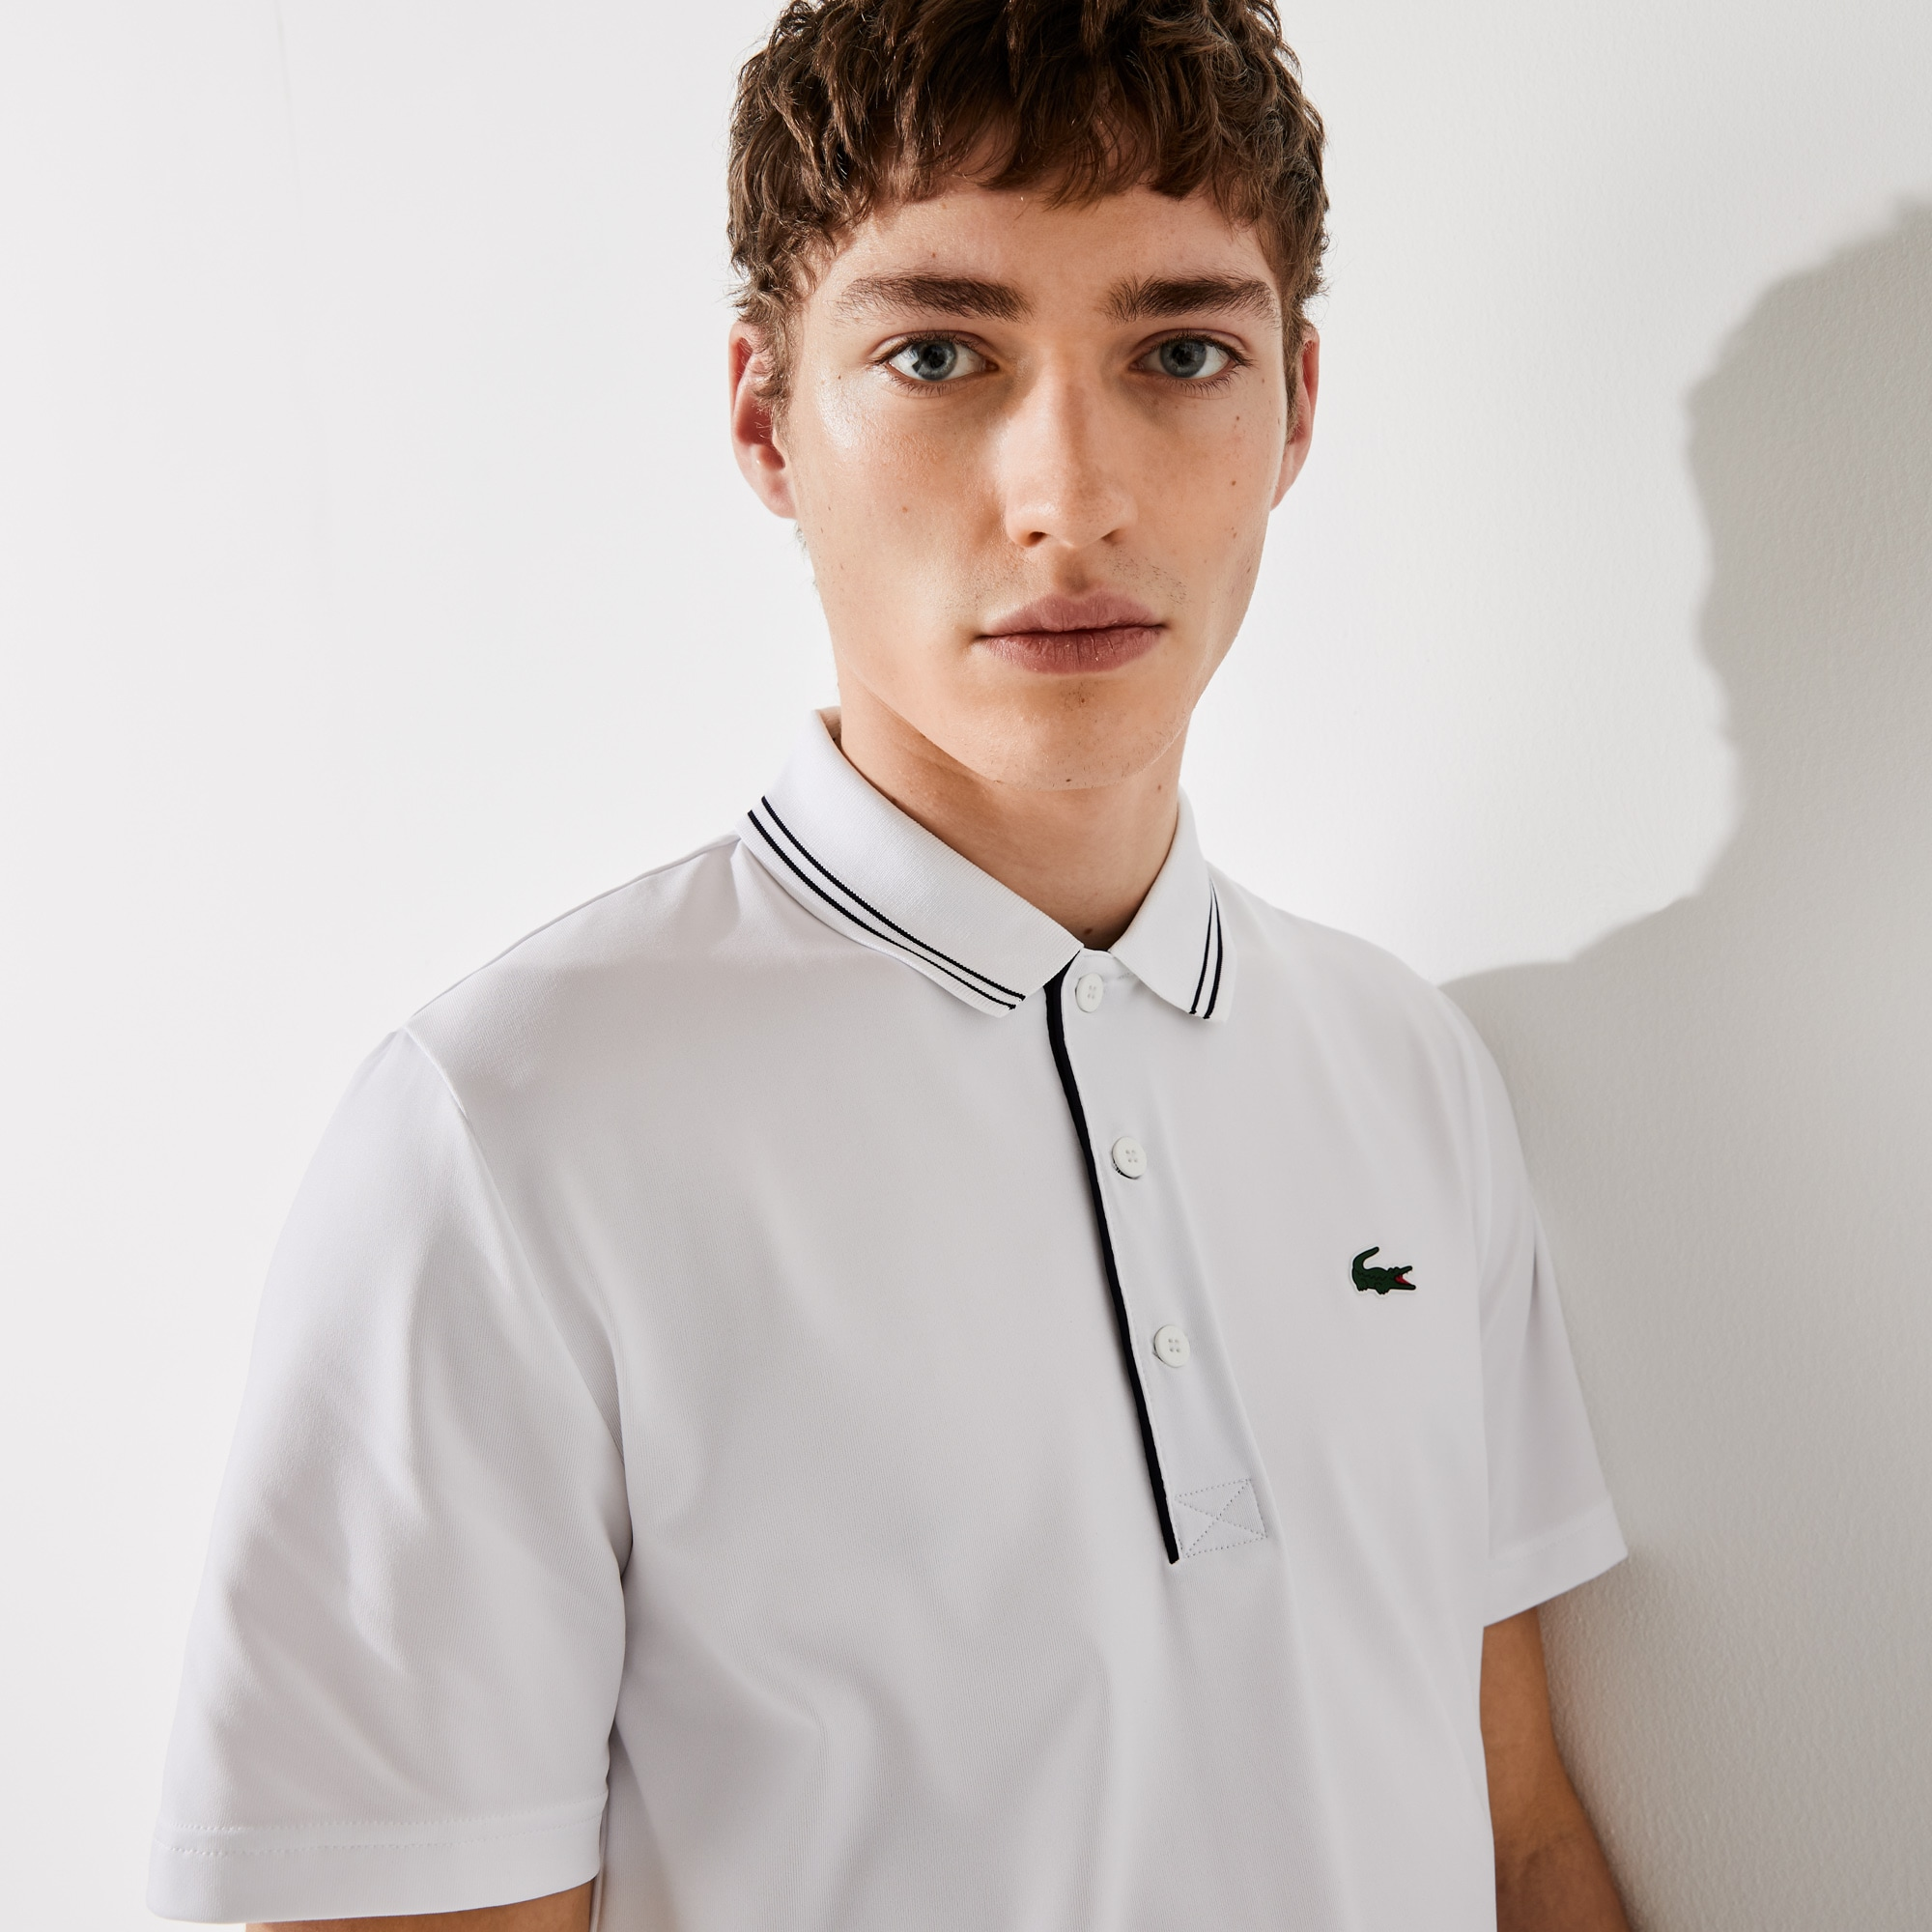 라코스테 Lacoste Mens SPORT Signature Breathable Golf Polo Shirt